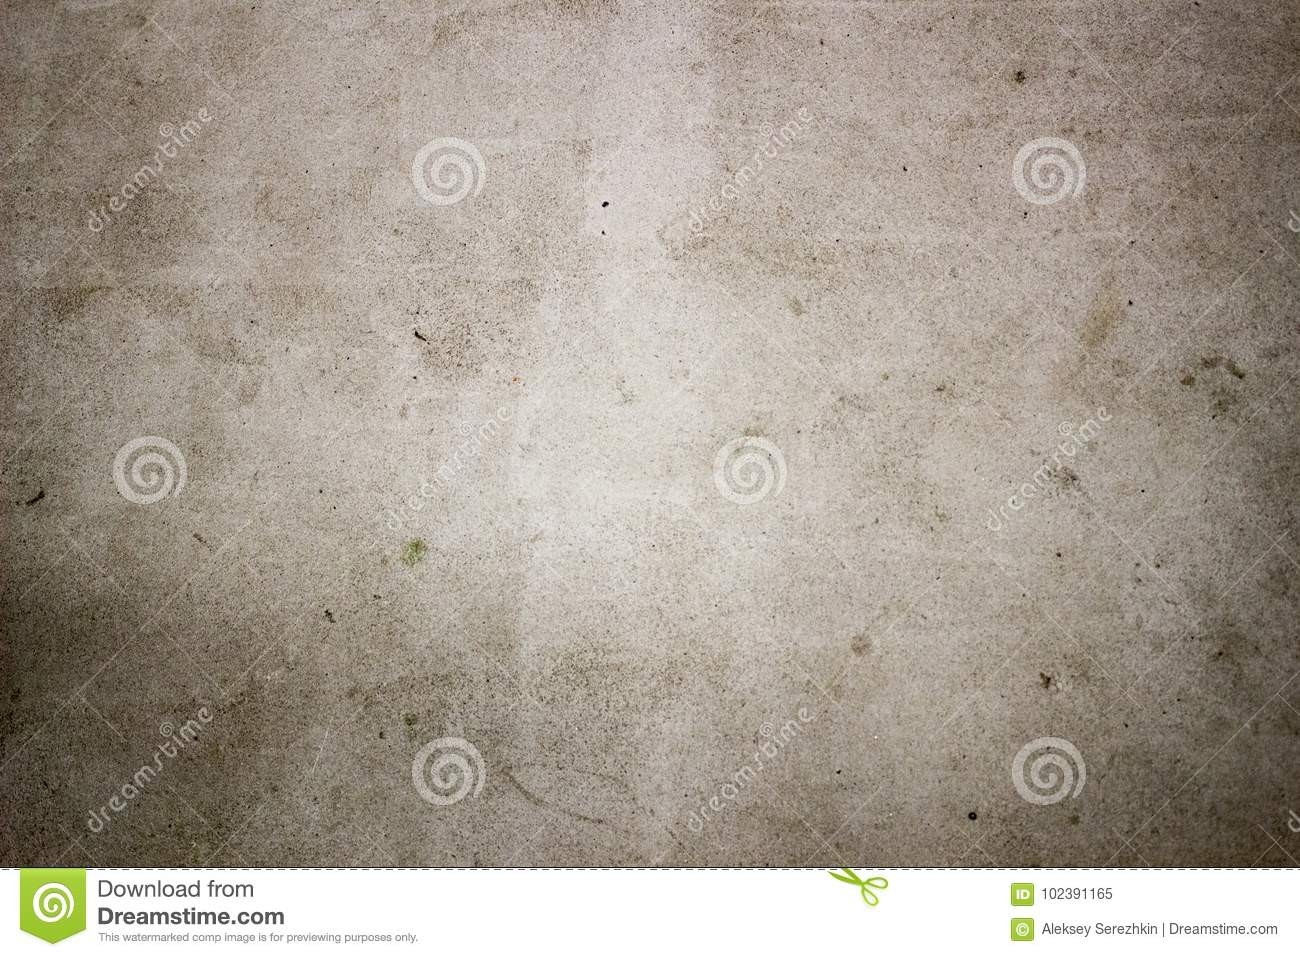 Concrete wall, texture, background